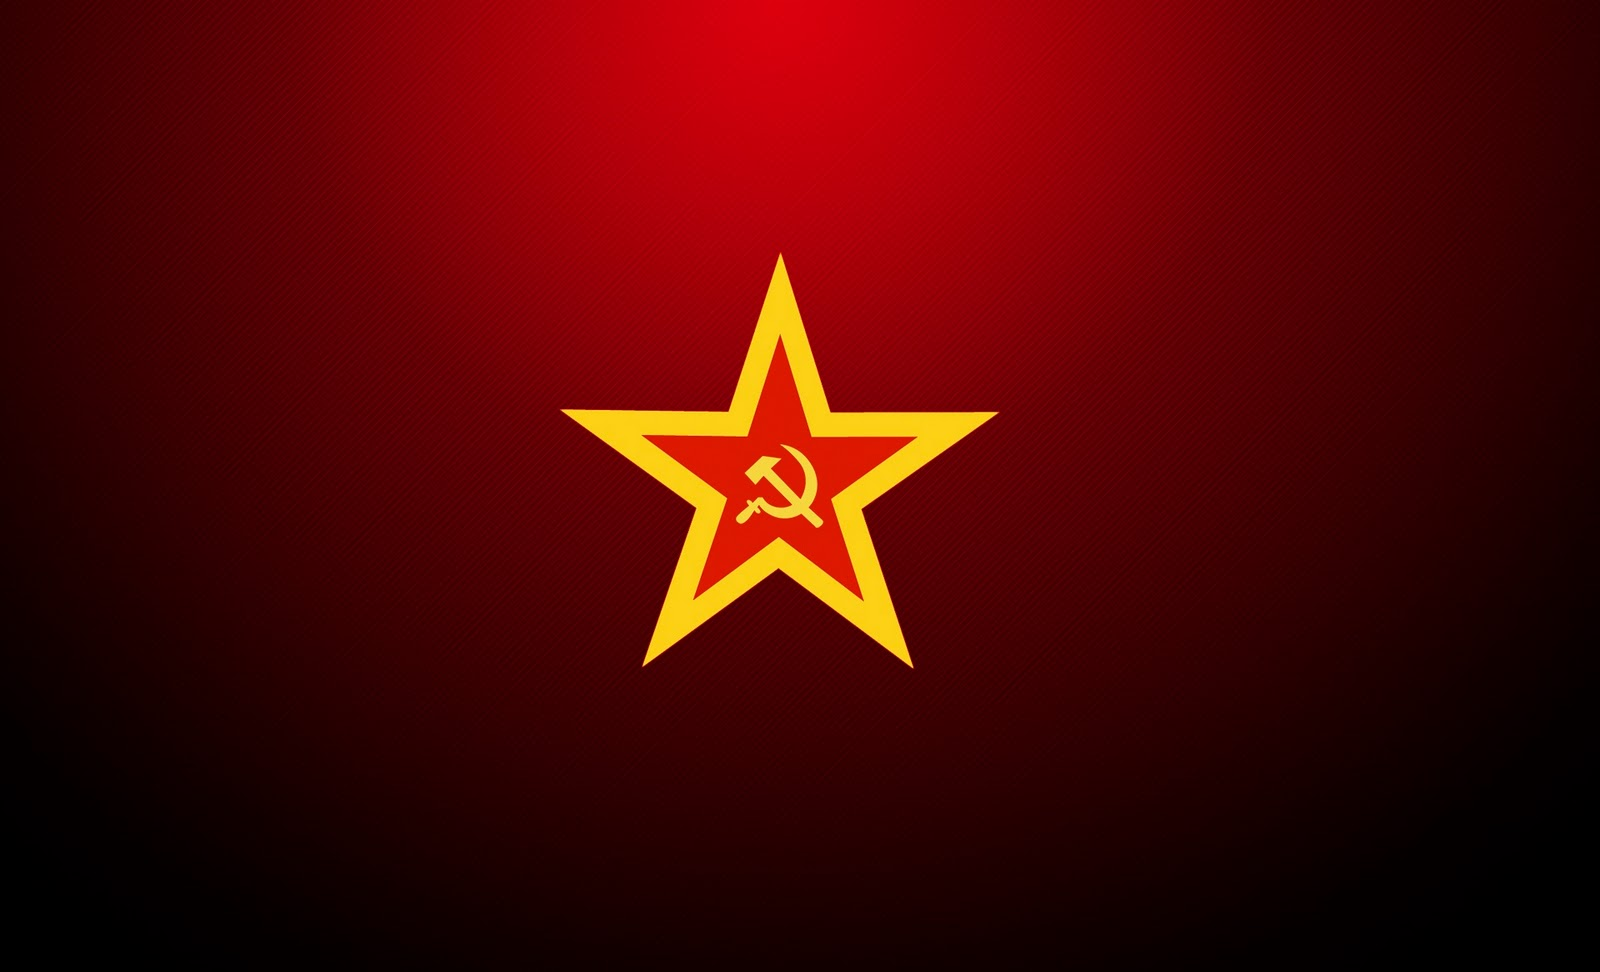 red star wallpaper 3d - photo #16